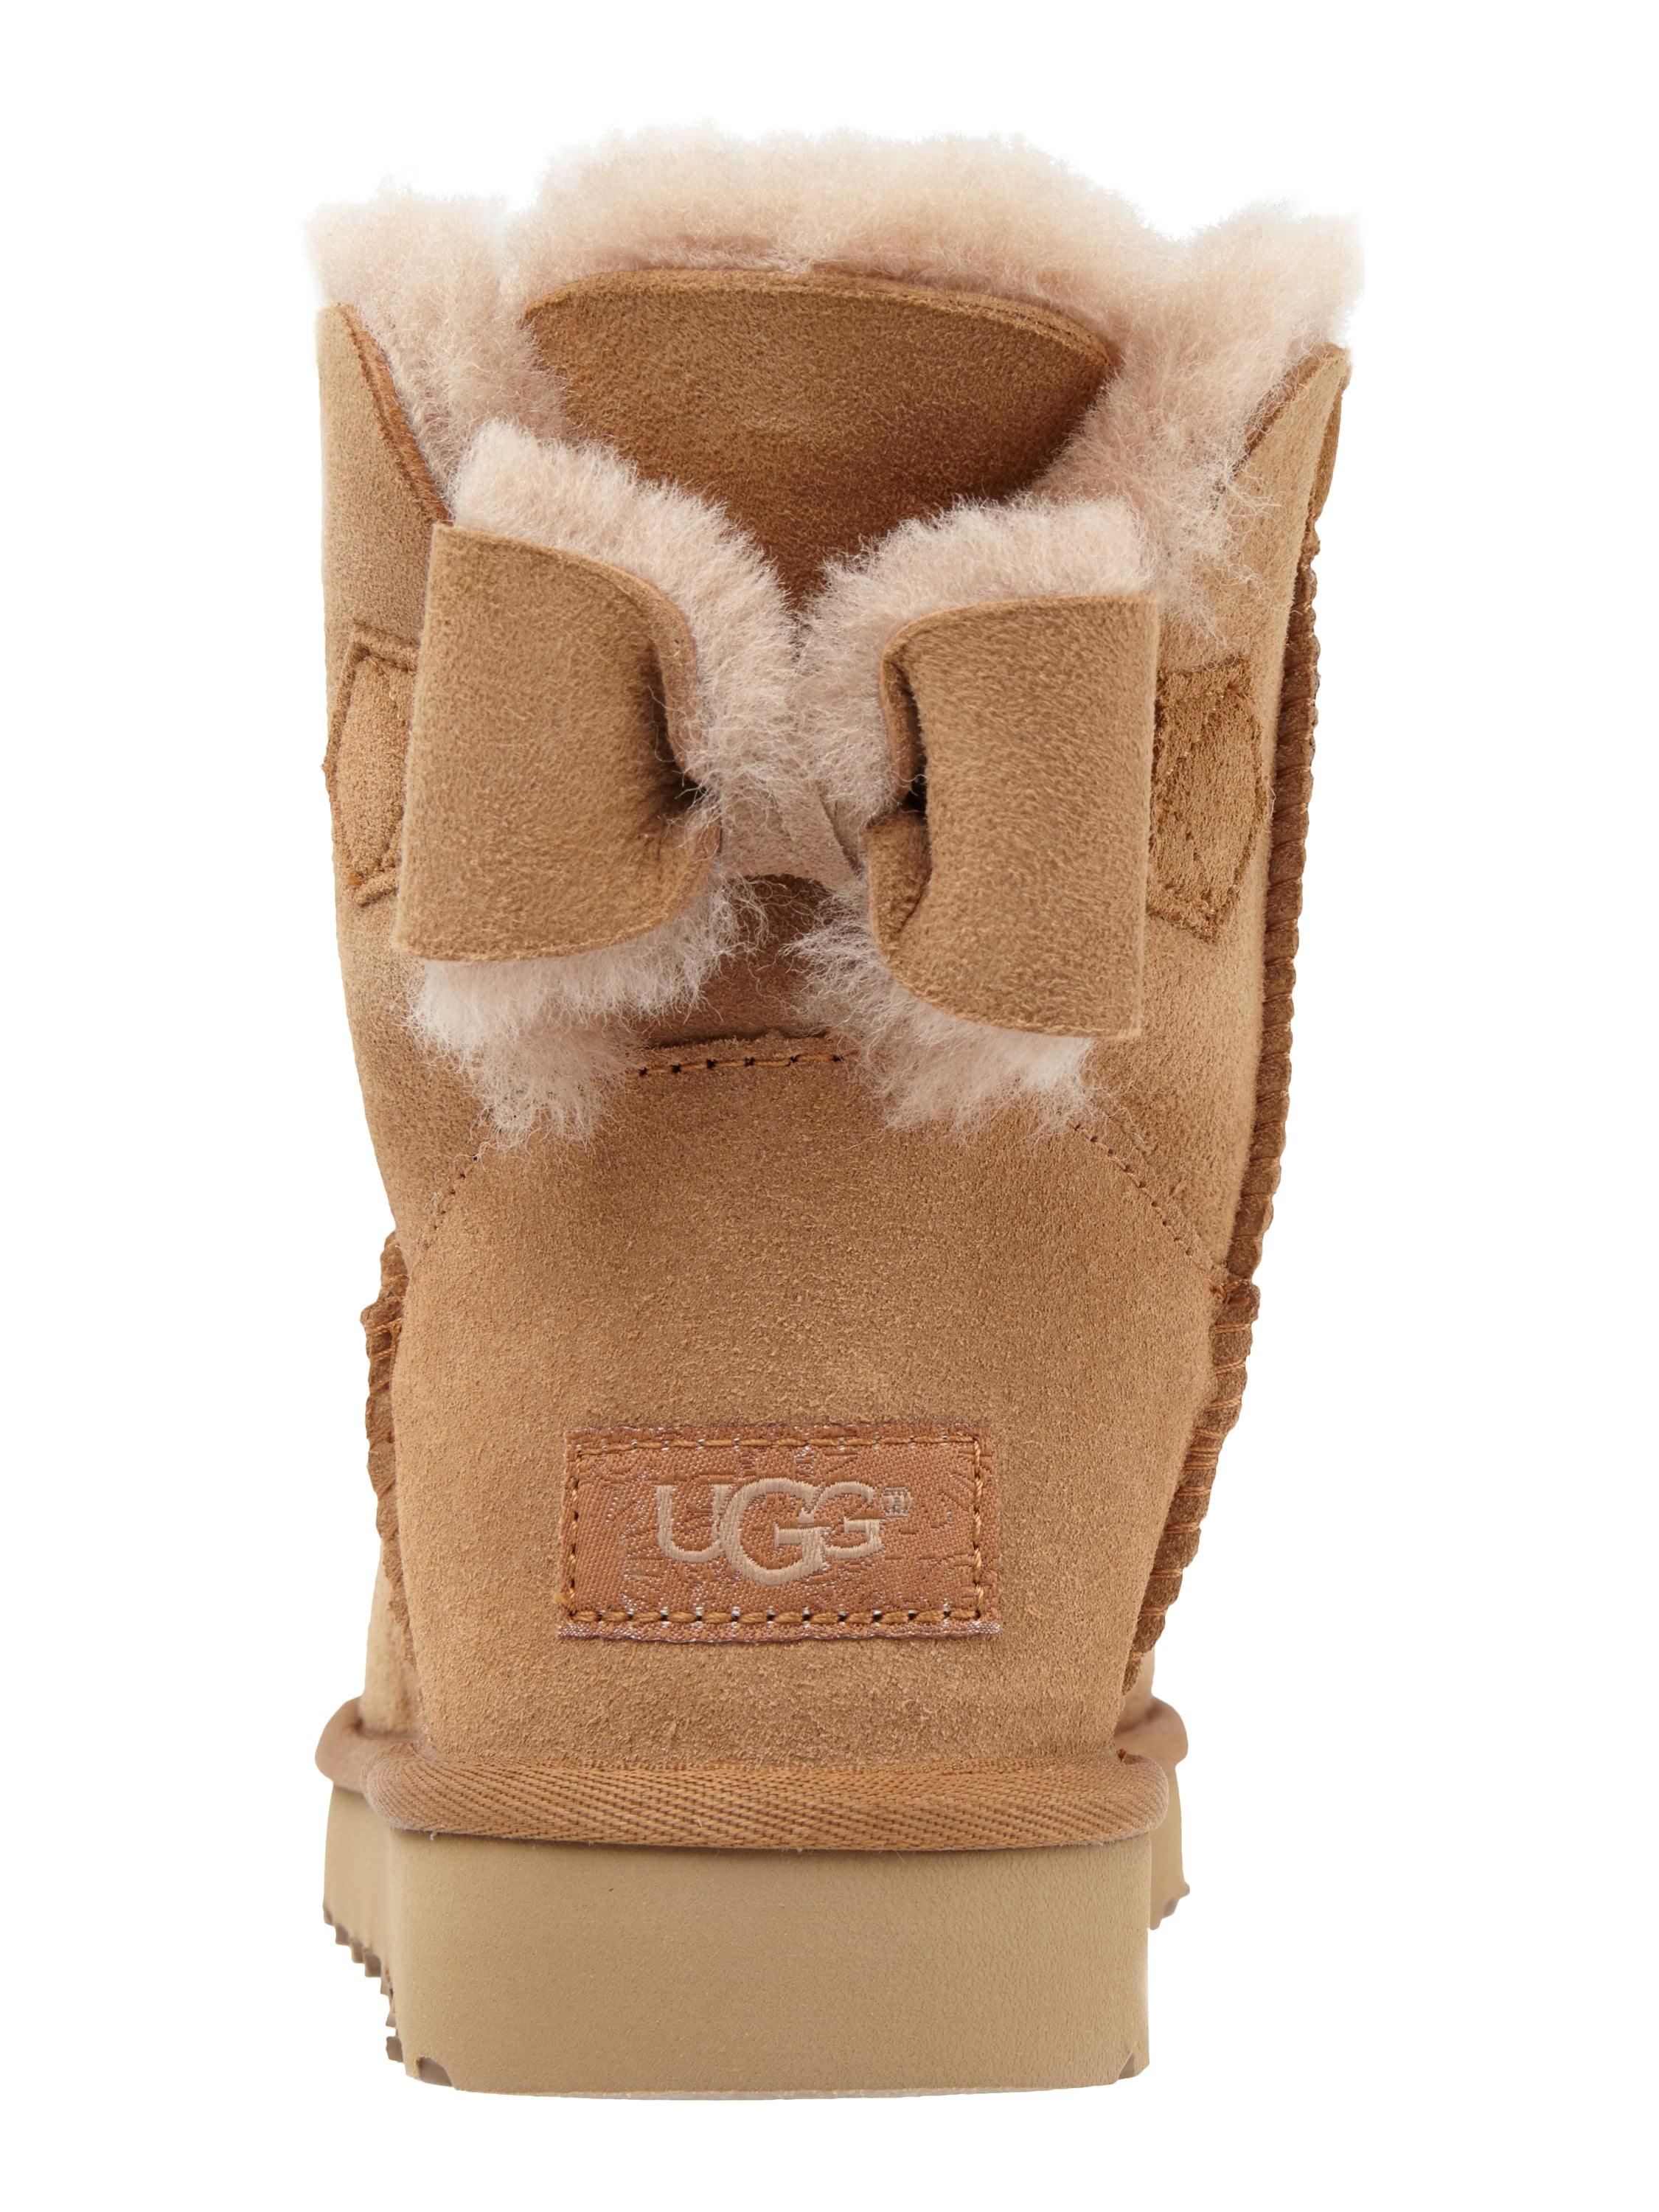 von maur baby uggs von maur offers free gift wrapping and free. Black Bedroom Furniture Sets. Home Design Ideas